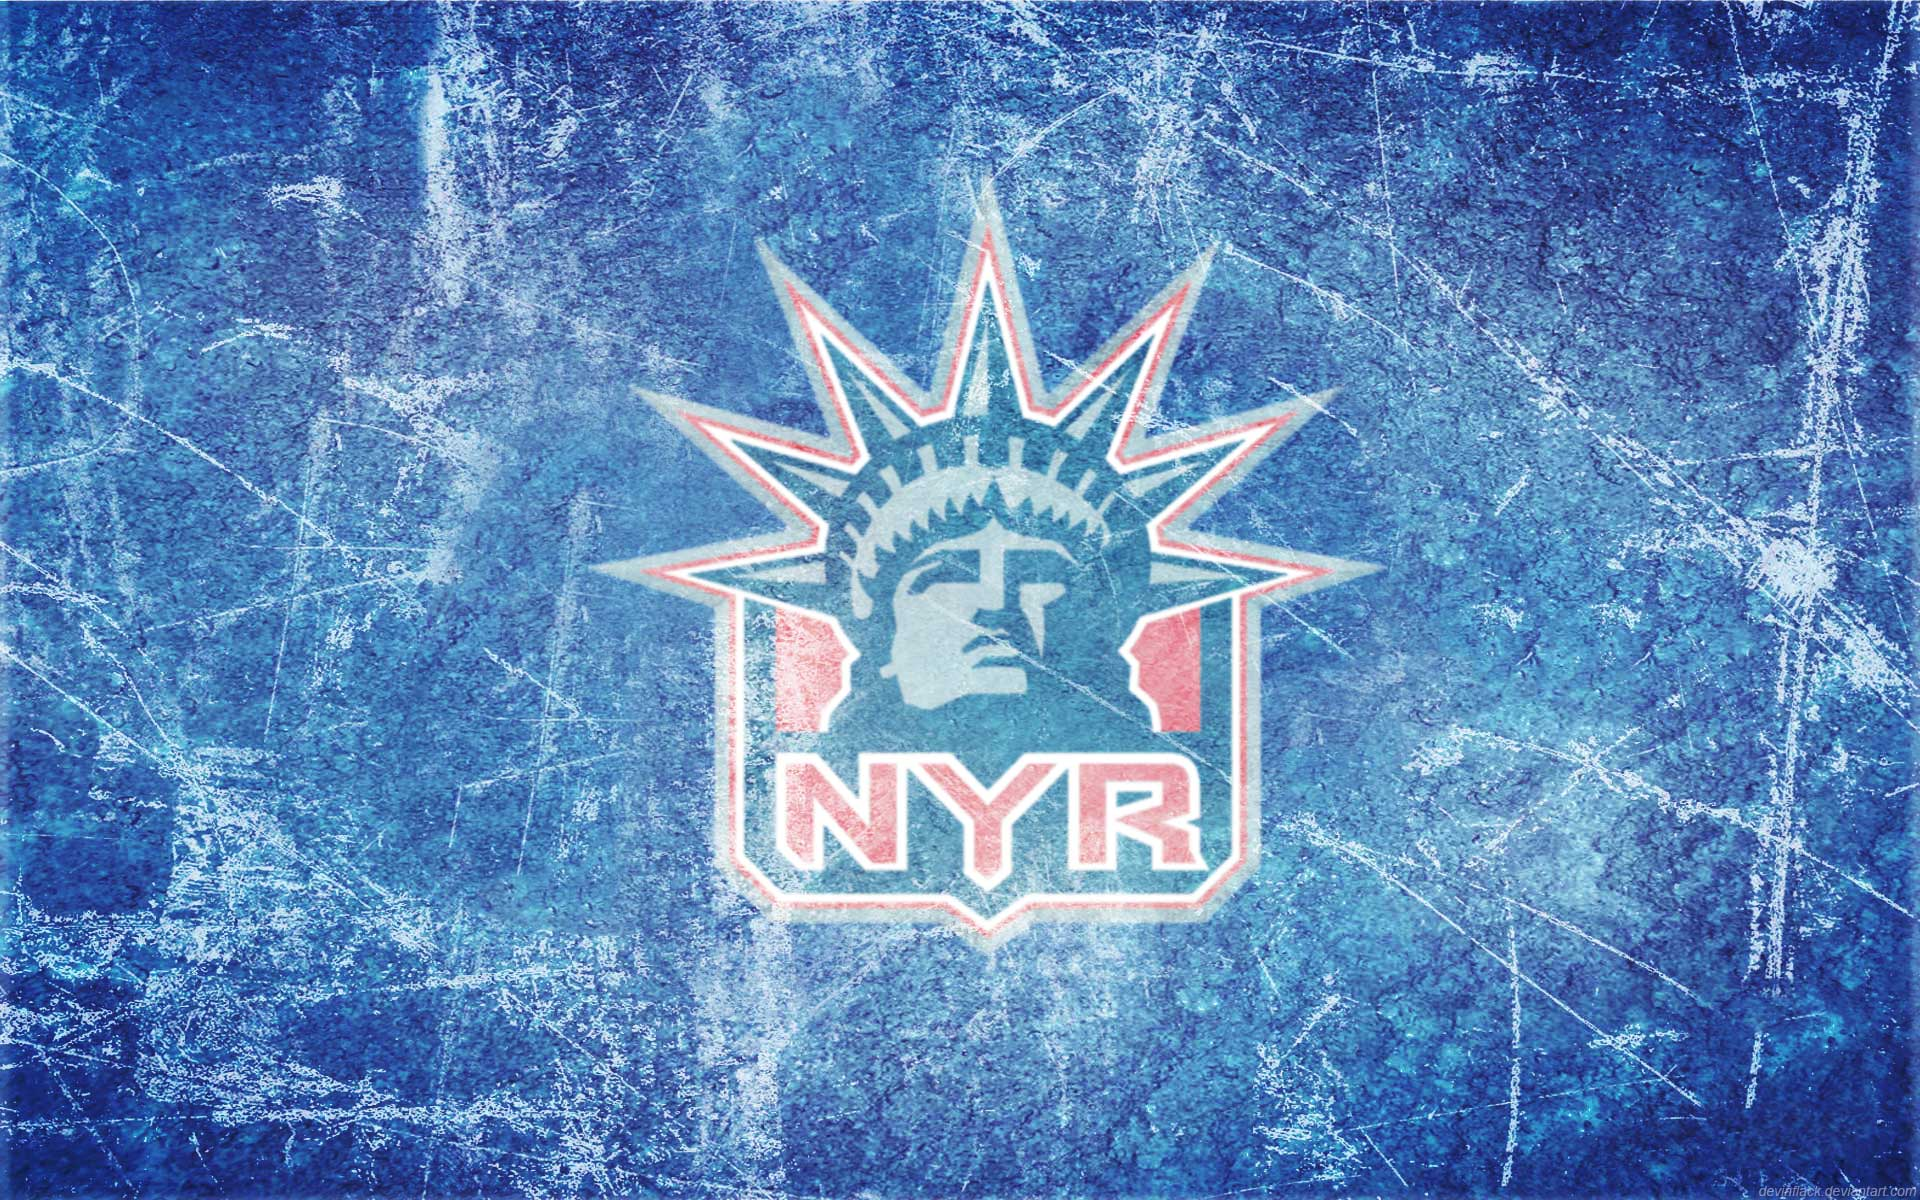 New York Rangers background New York Rangers wallpapers 1920x1200